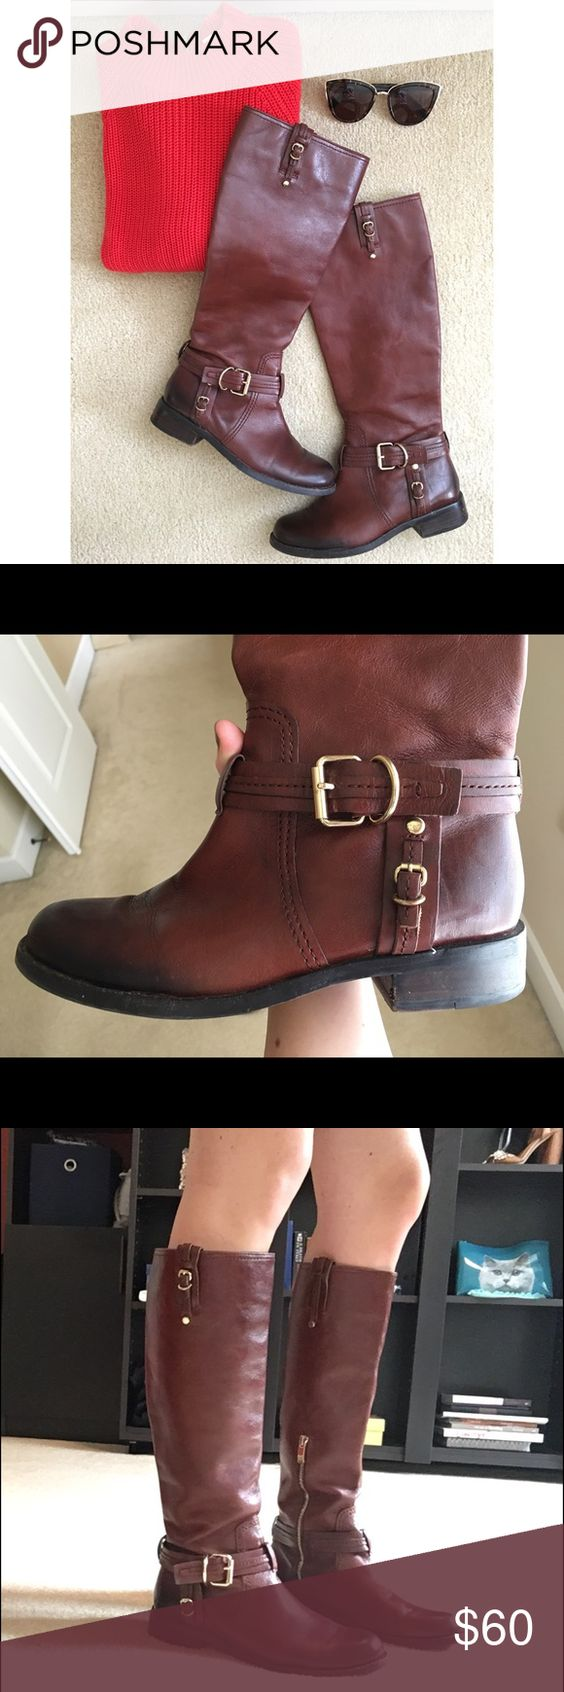 Vince Camuto leather riding boot Beautiful mahogany colored leather boot, gold hardware, side half-zip to easily get the boot on, ombré look on toe, worn only a couple times, no defects. Vince Camuto Shoes Combat & Moto Boots